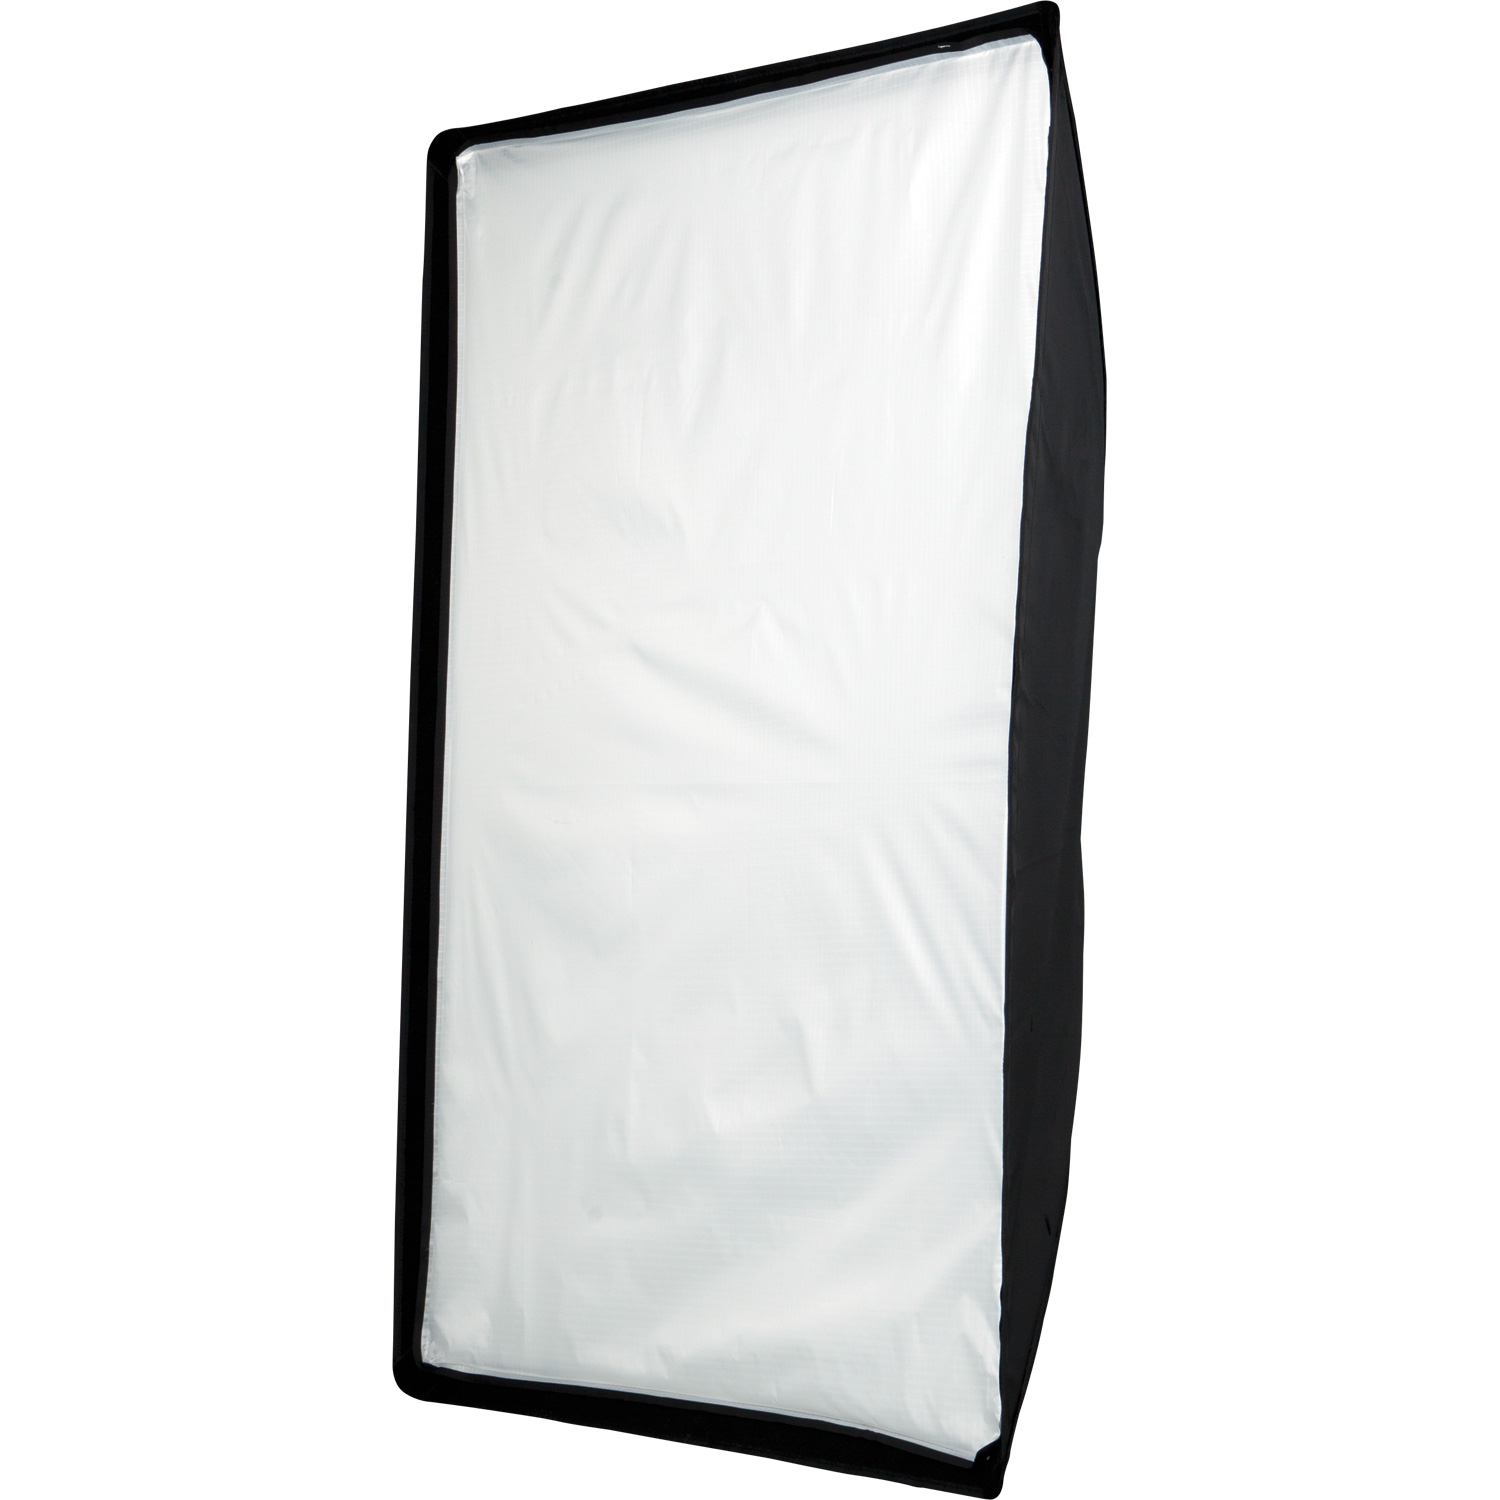 Pro 36-in. x 48-in. Shallow Softbox with Silver Interior